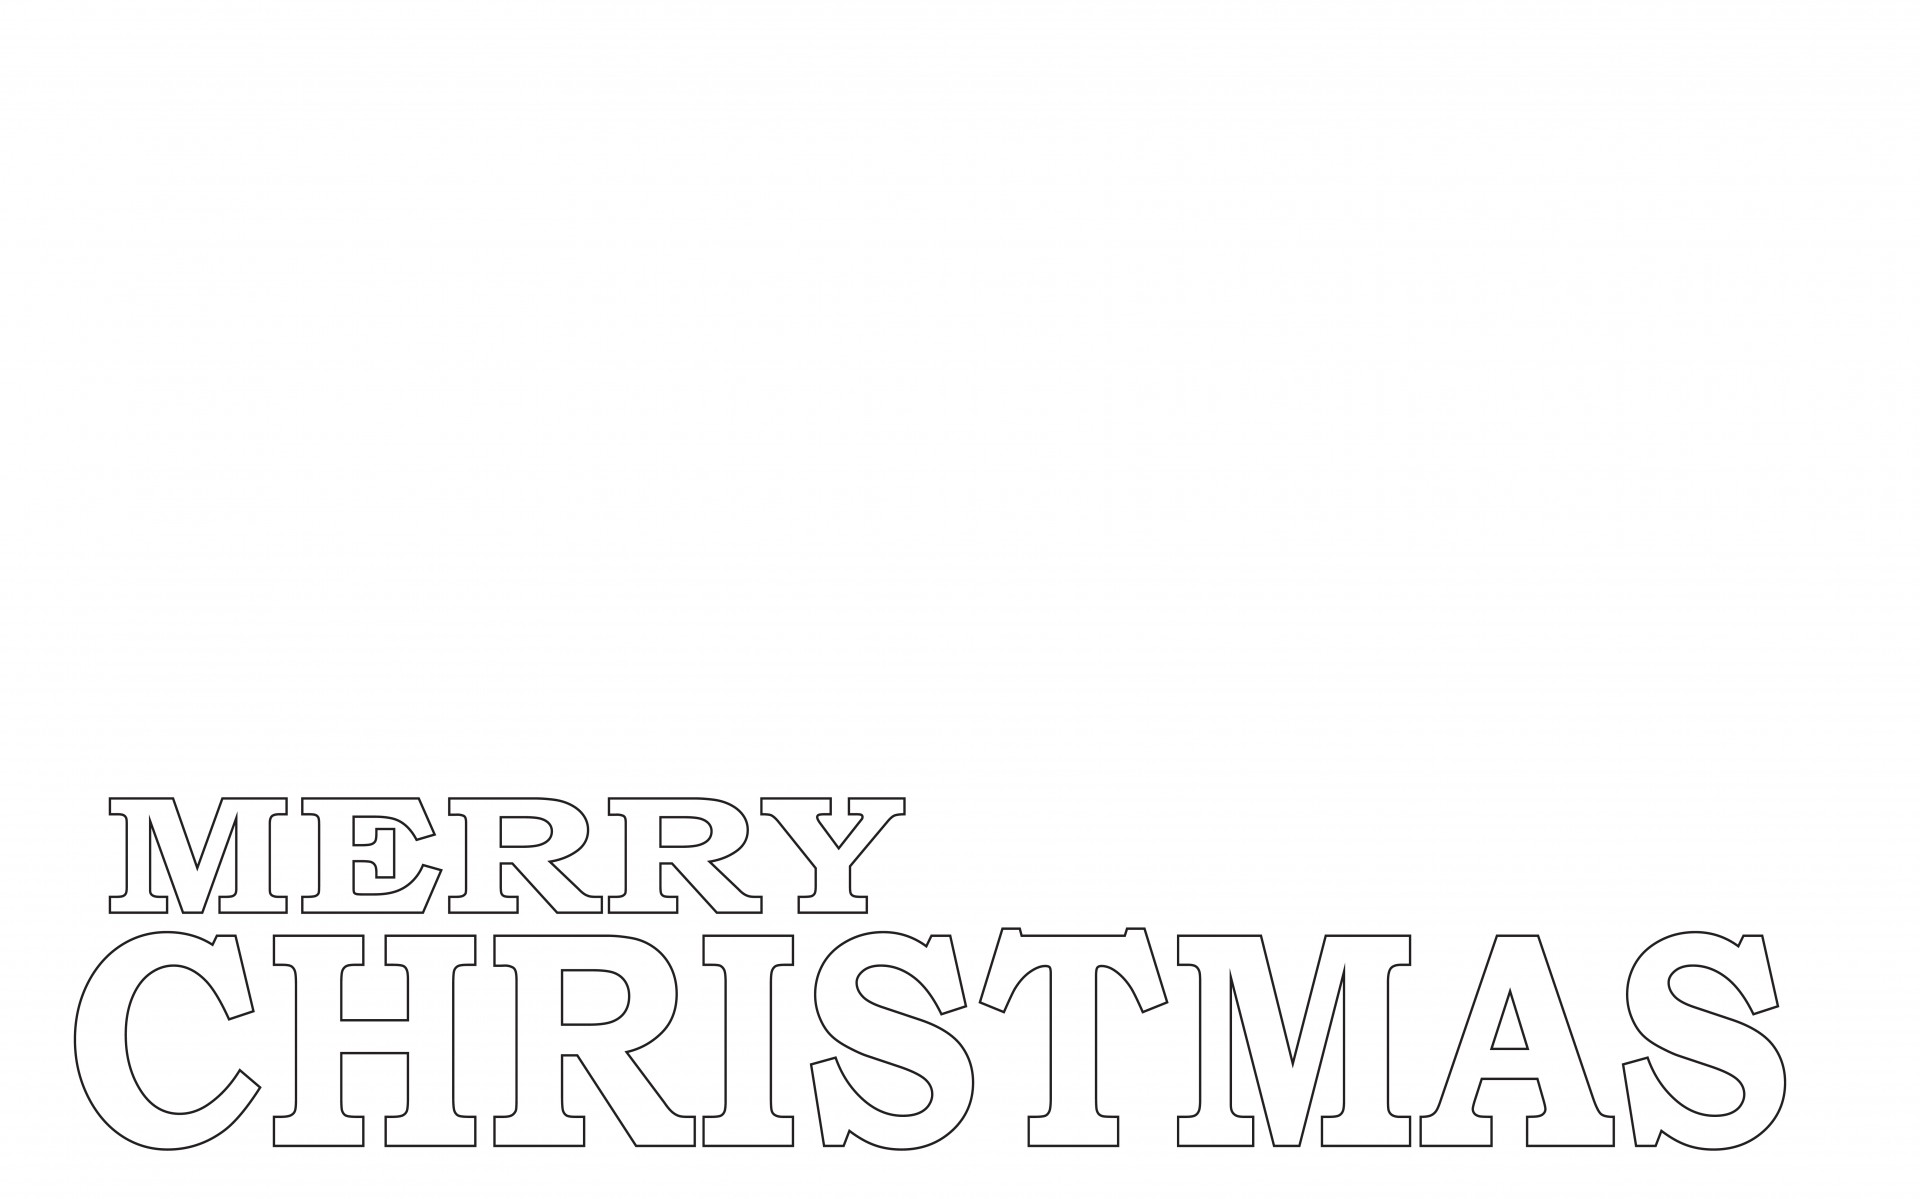 wordsmerrychristmasoutlineartcoloringlayersmerry christmas